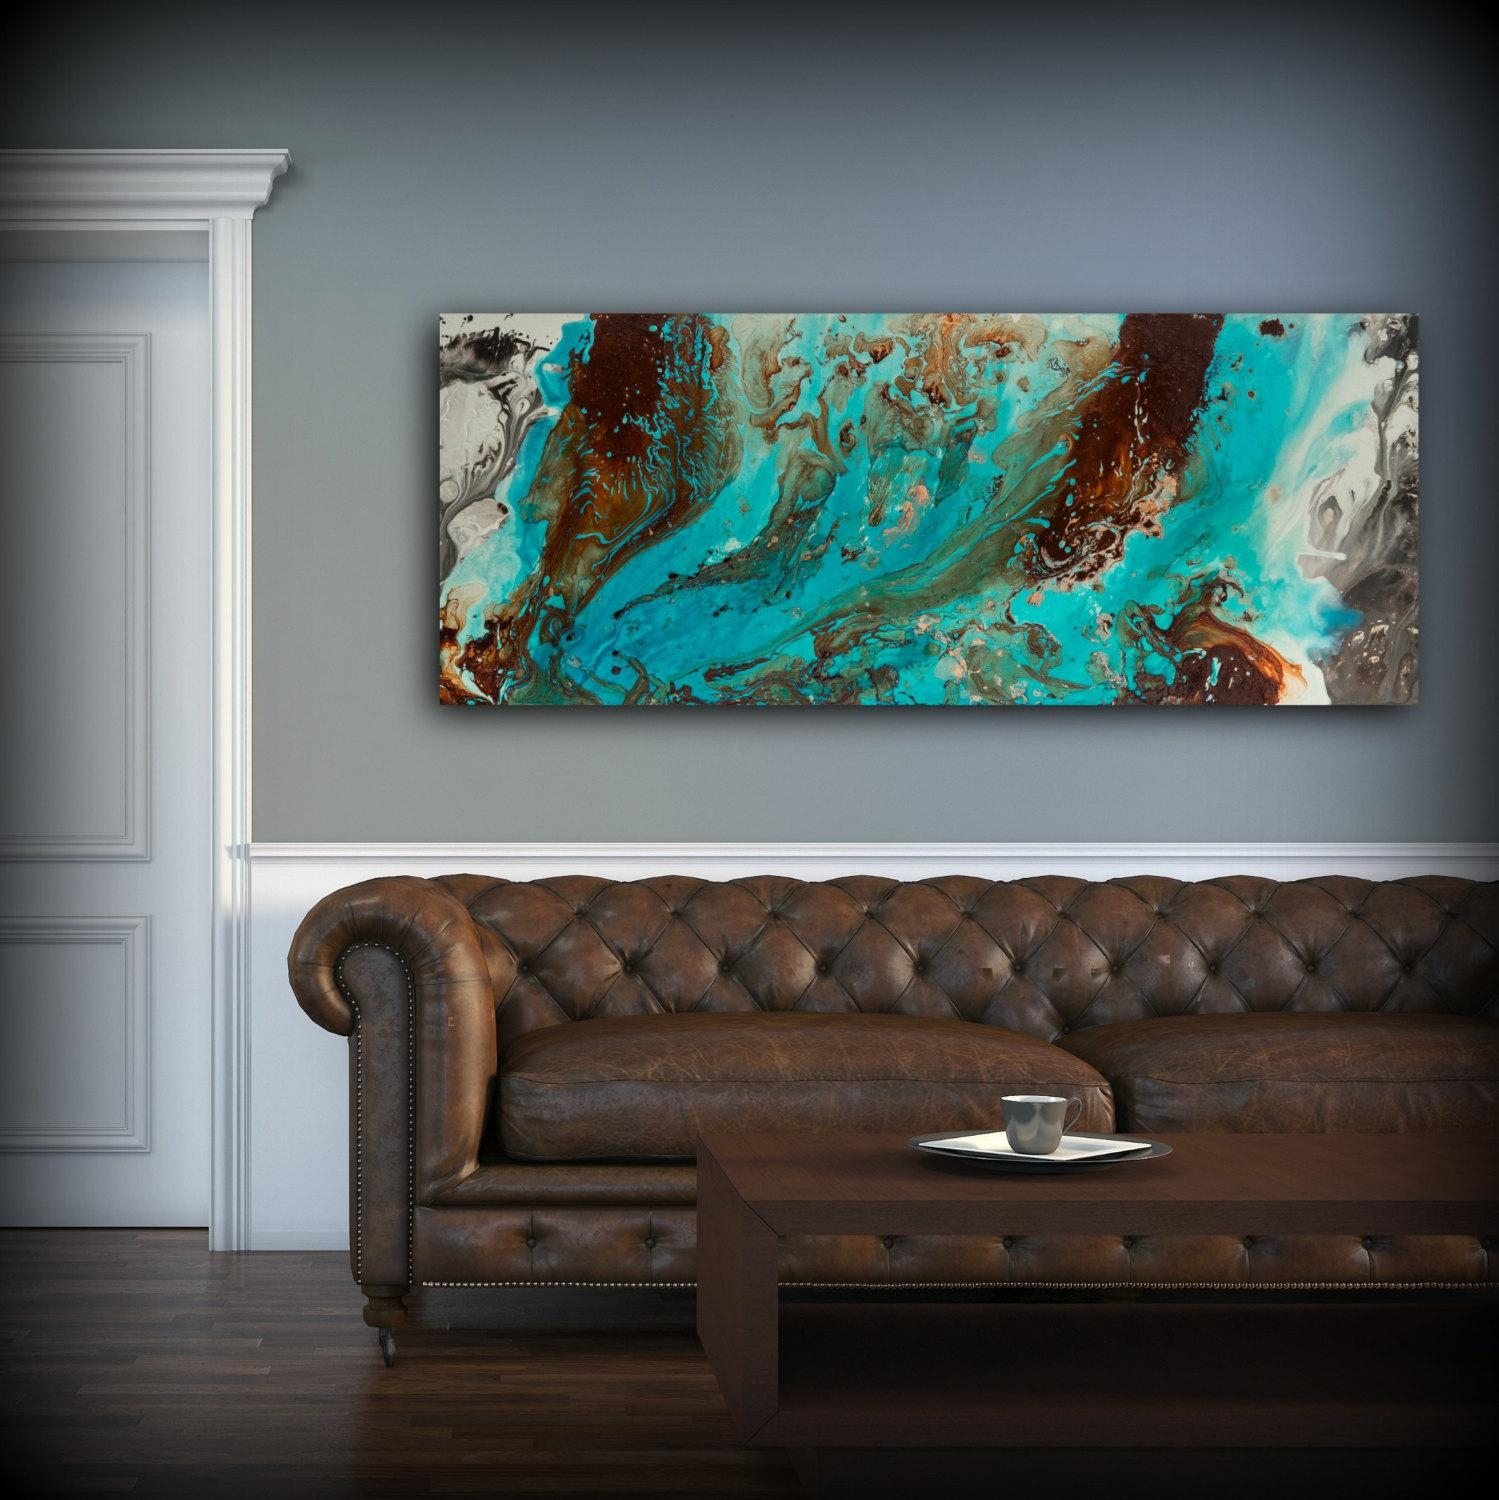 Aqua Print Blue And Brown Wall Art Decor Colourful Bohemian For Blue Wall Art (Image 5 of 20)